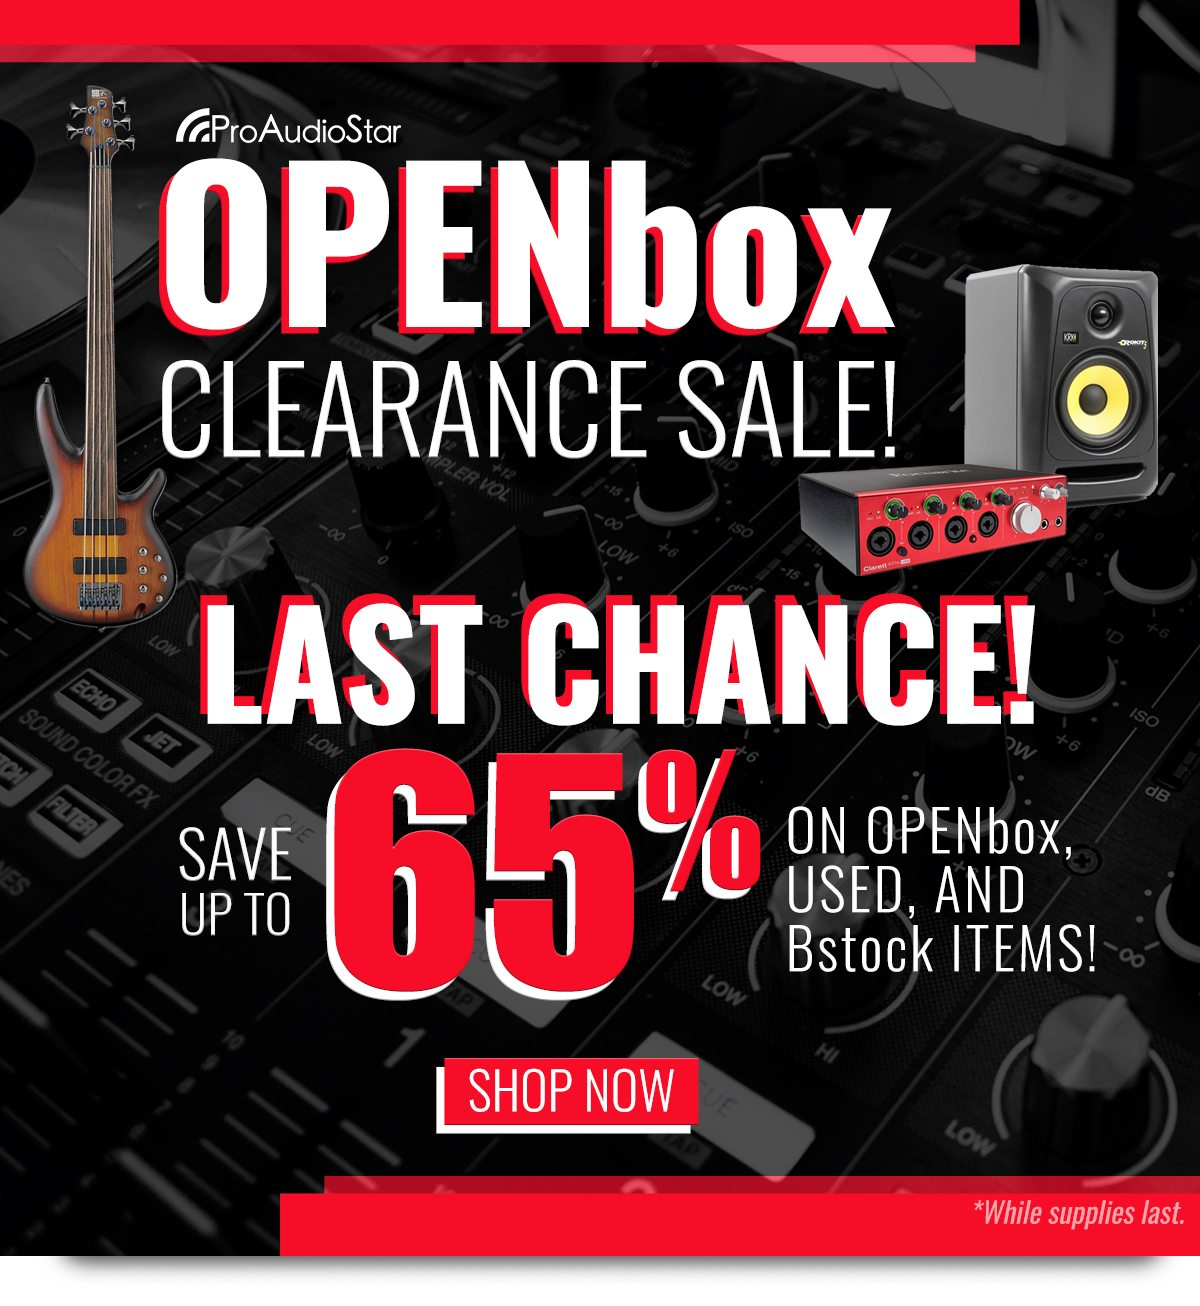 Save Up To 65% Storewide on these Open Box Deals